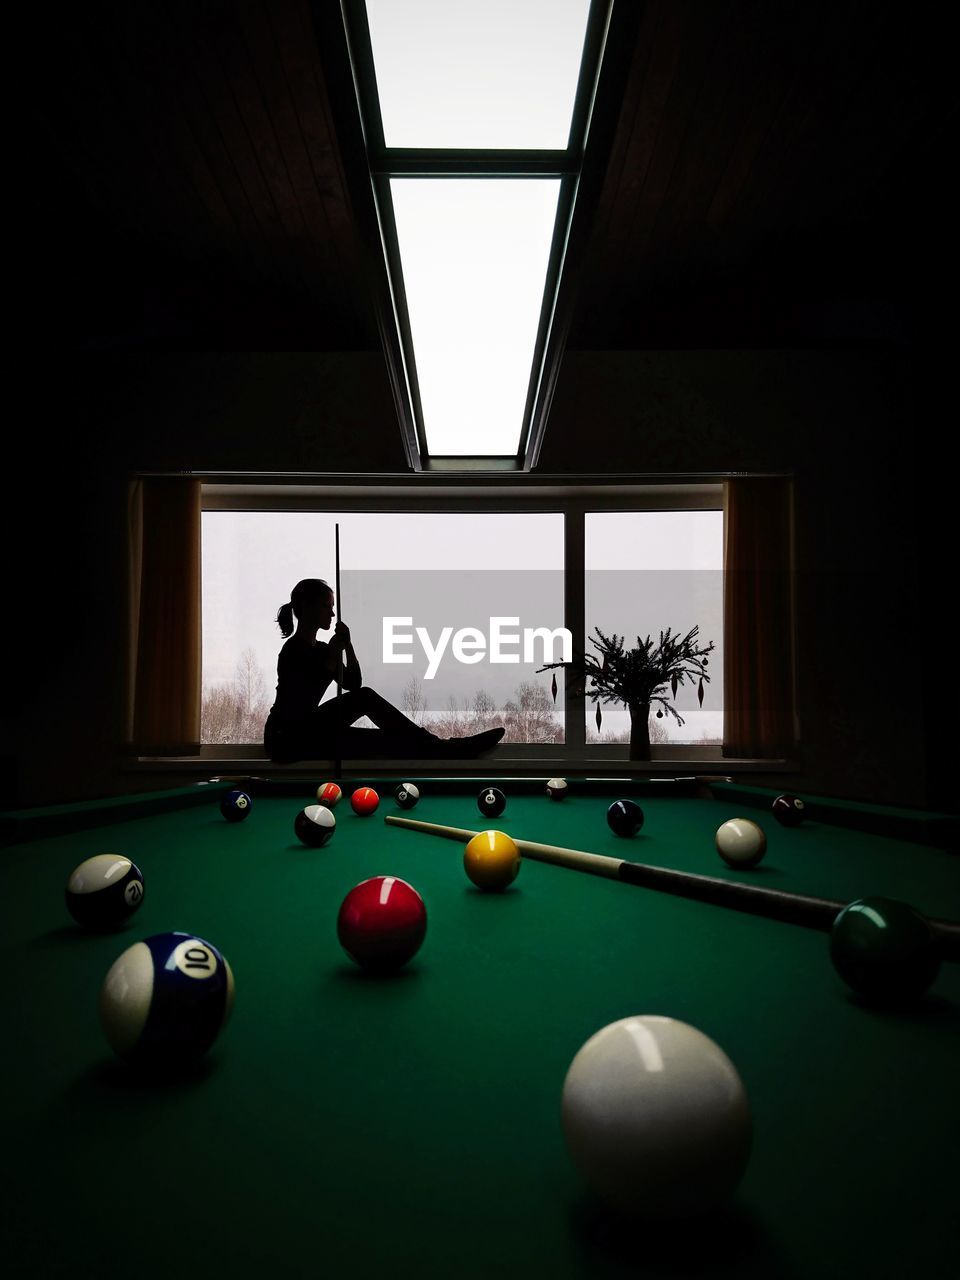 MAN PLAYING WITH BALL ON TABLE IN WINDOW